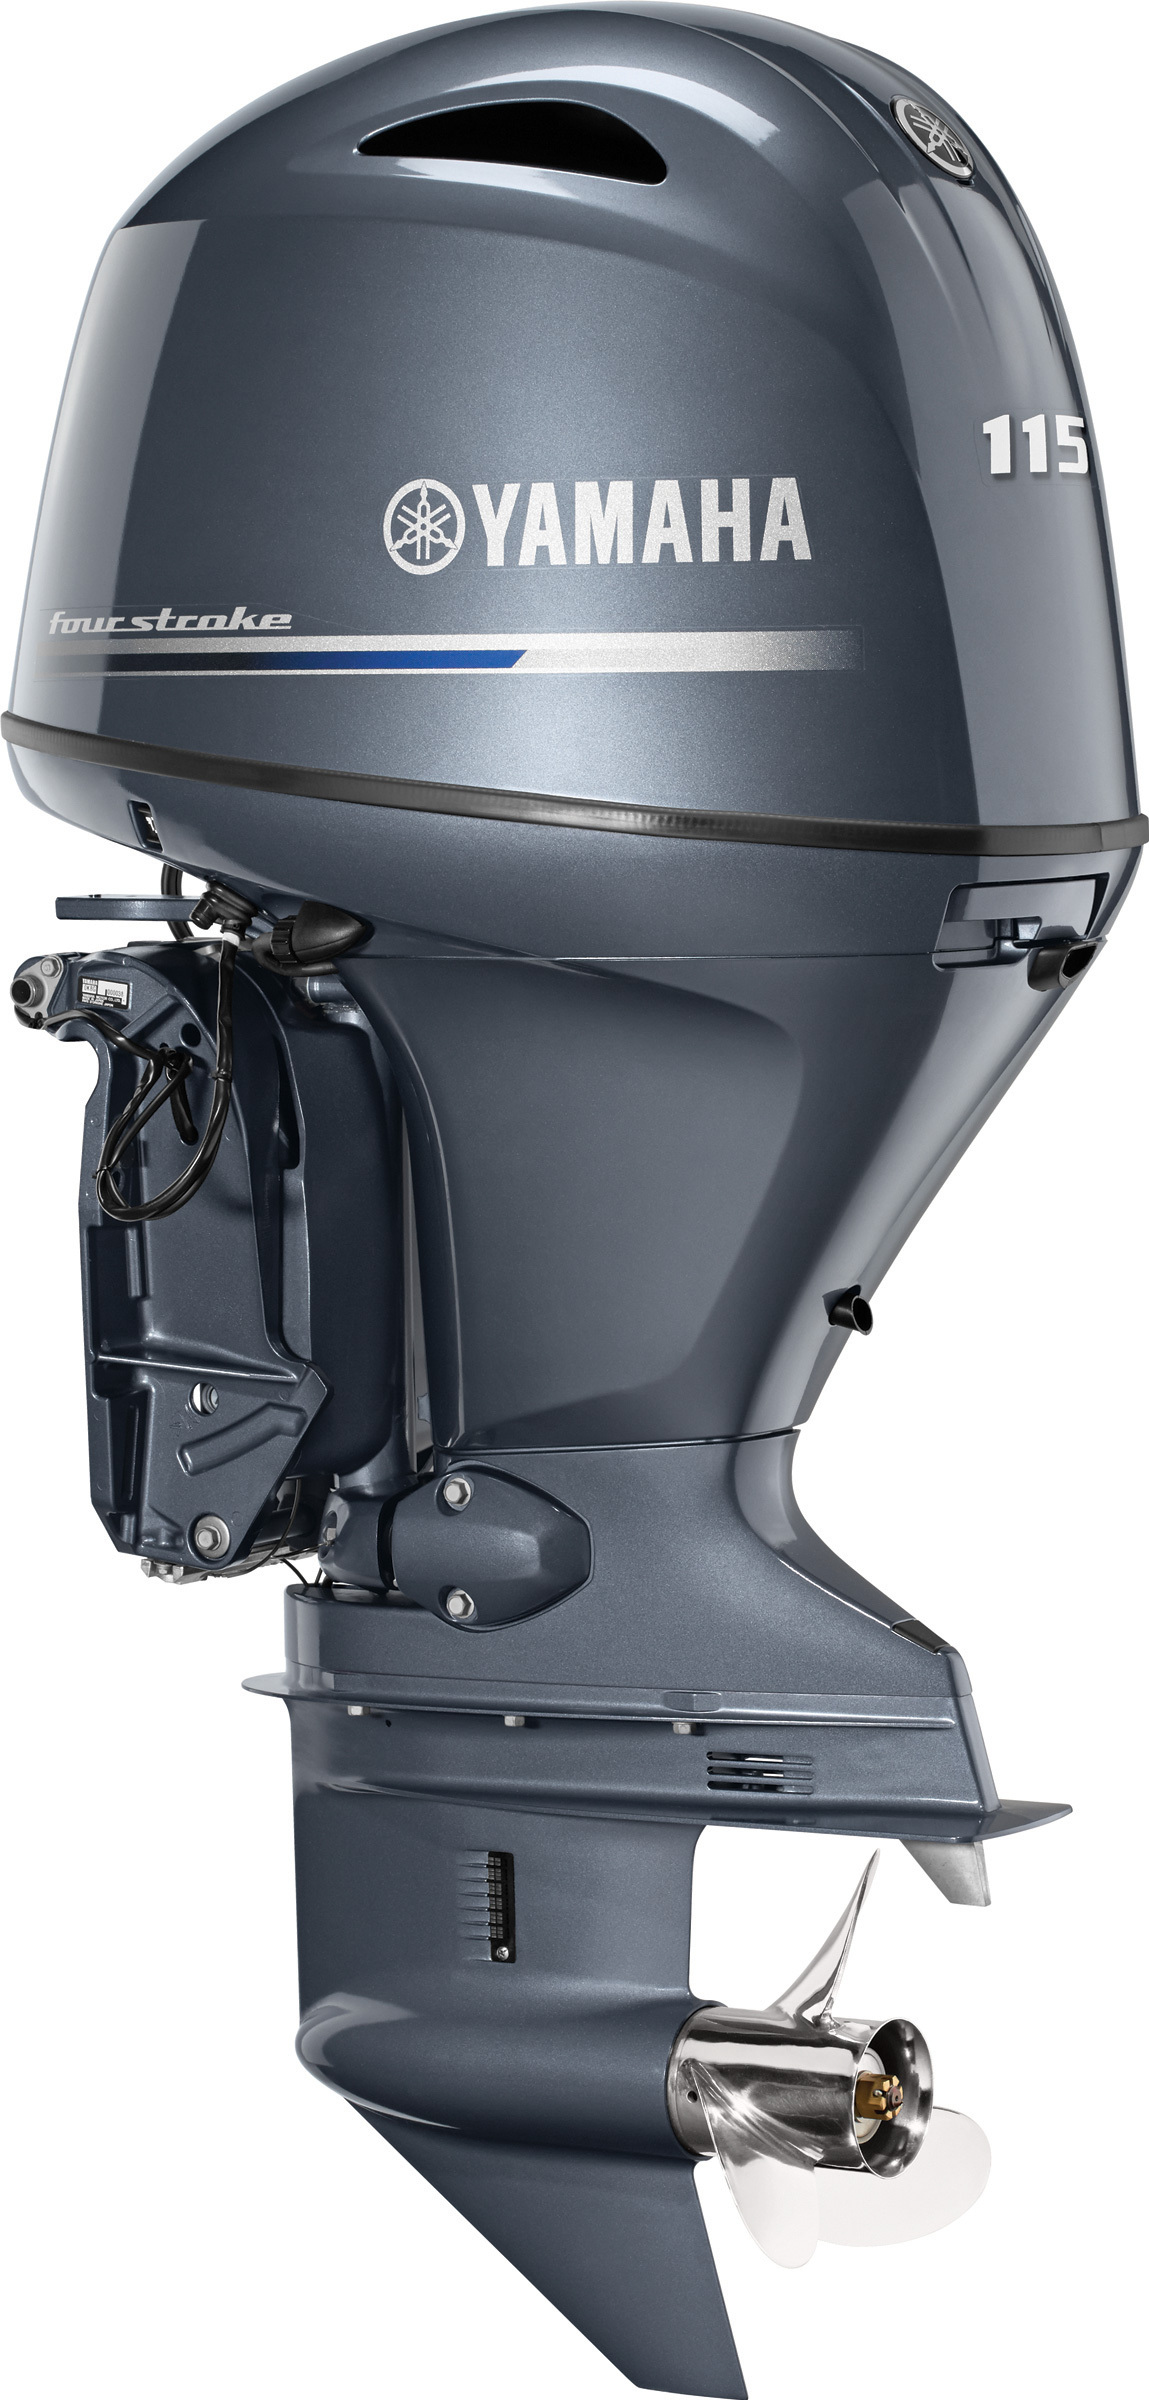 More New Outboard News: Yamaha F115 is Lighter, Quieter ...